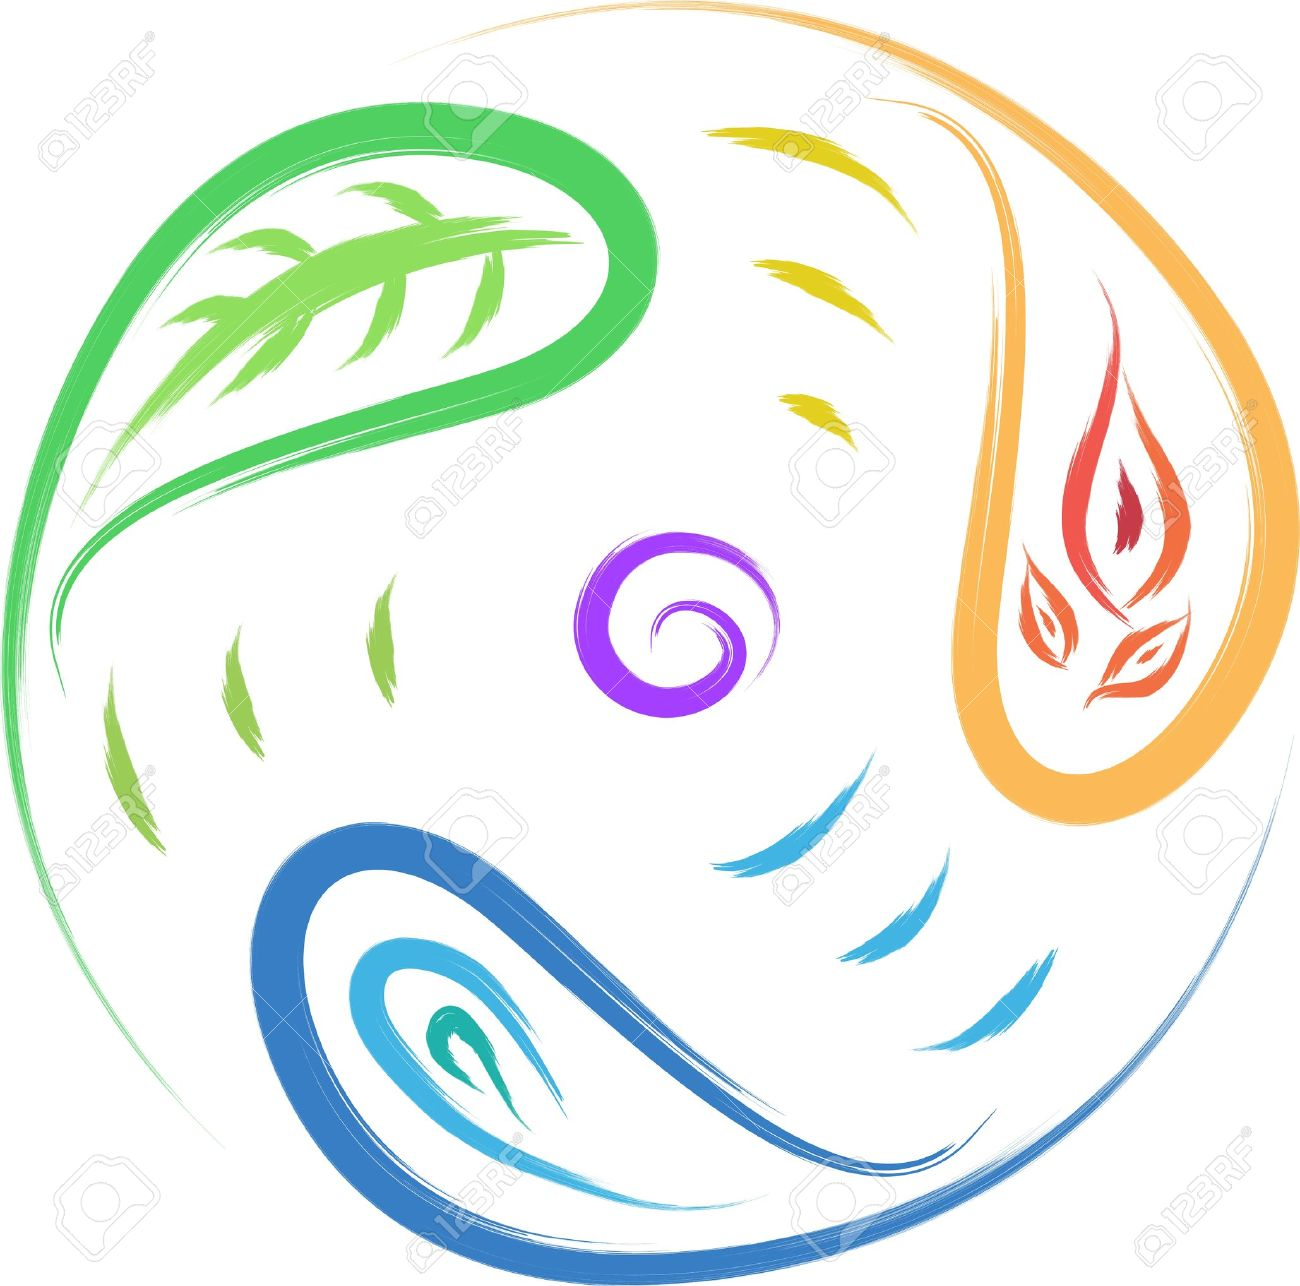 Nature symbol leaf fire water circle of life royalty free nature symbol leaf fire water circle of life stock vector 16806928 biocorpaavc Choice Image